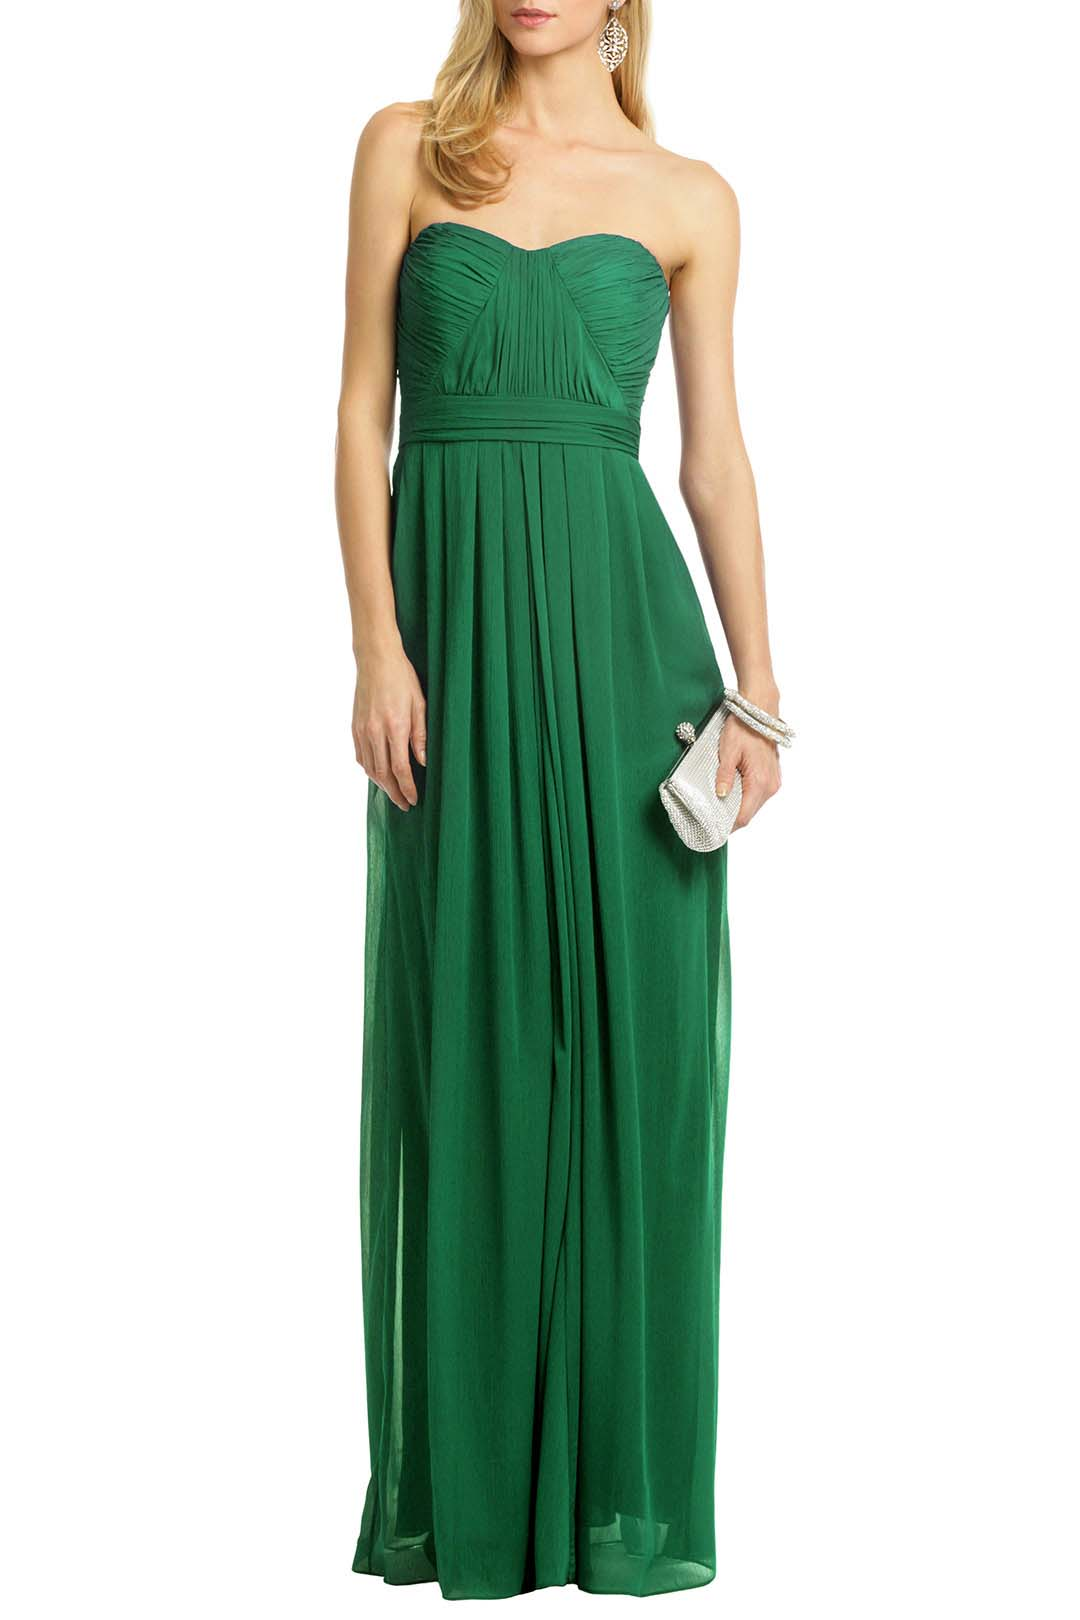 fad03cb7e2 rent the runway green badgley mischka floral chiffon masquerade ball gown